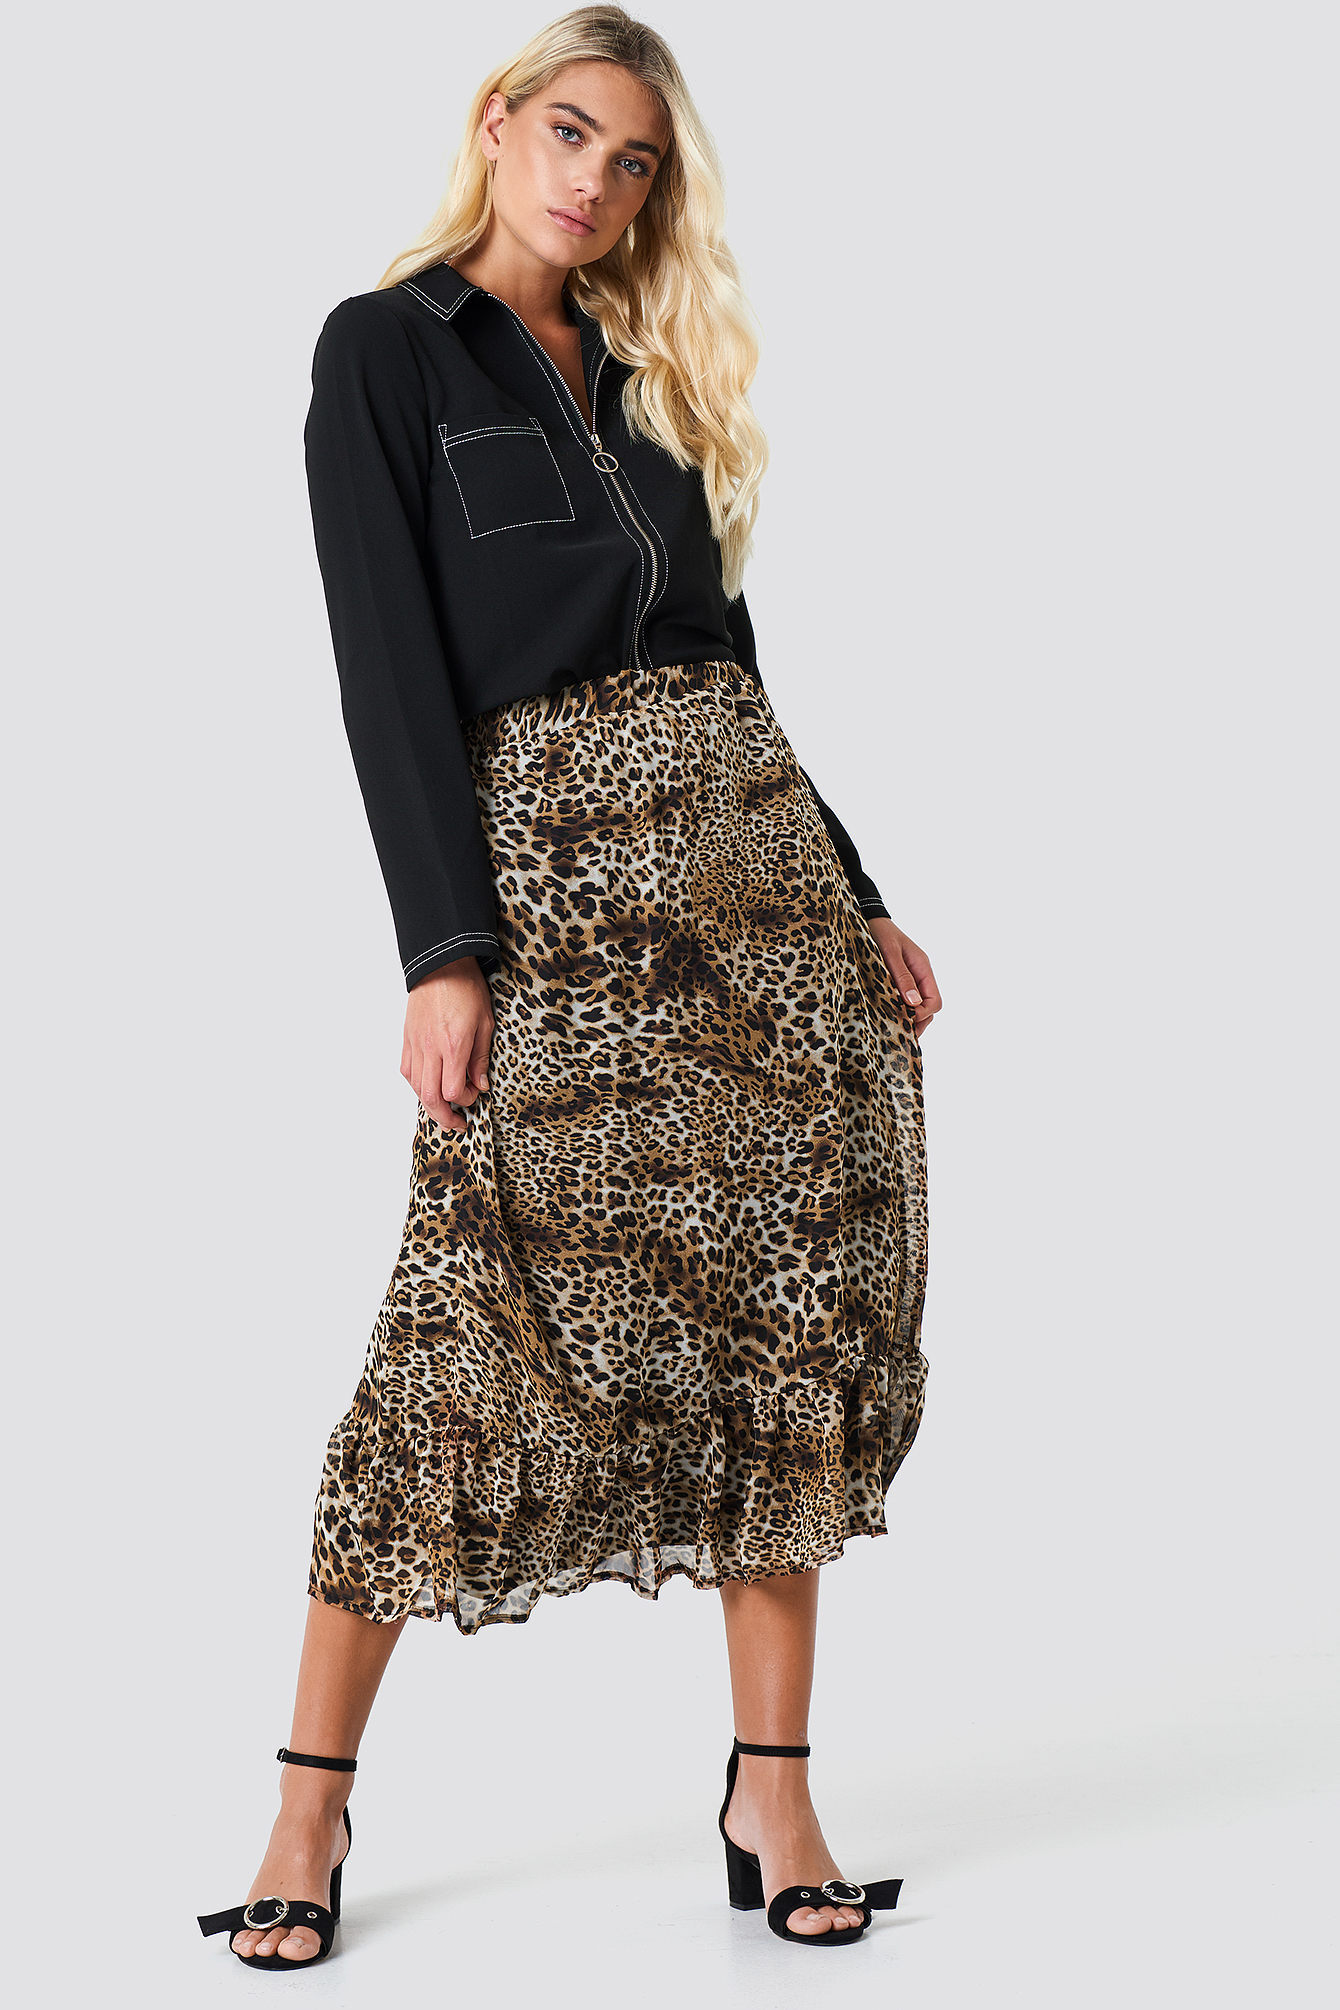 sisters point -  Emmy Skirt - Brown,Multicolor